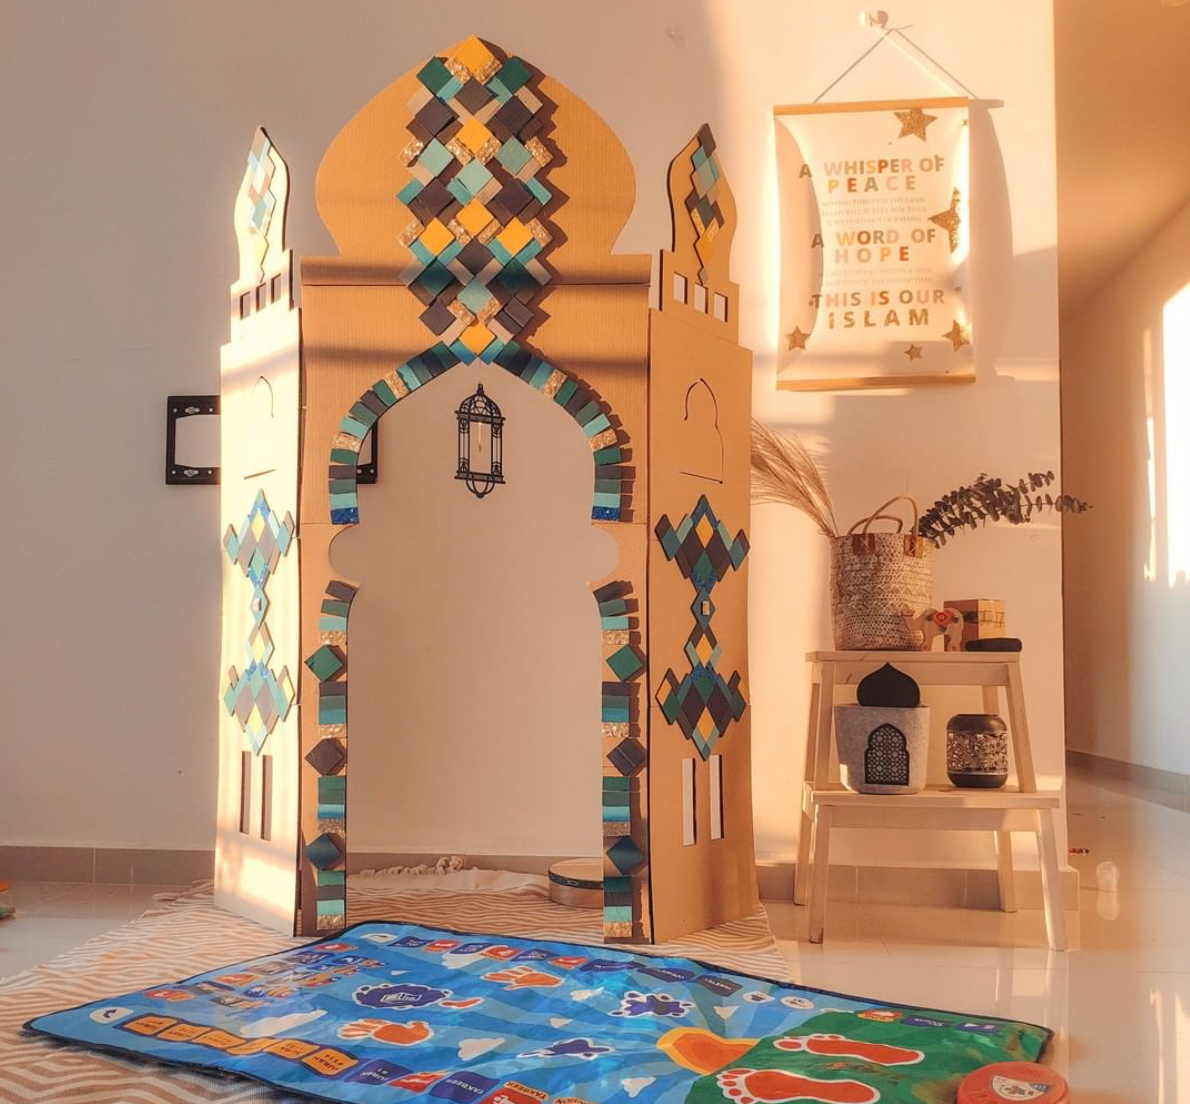 Meet the Muslim Children Building Mosques at home during COVID-19 Lockdown